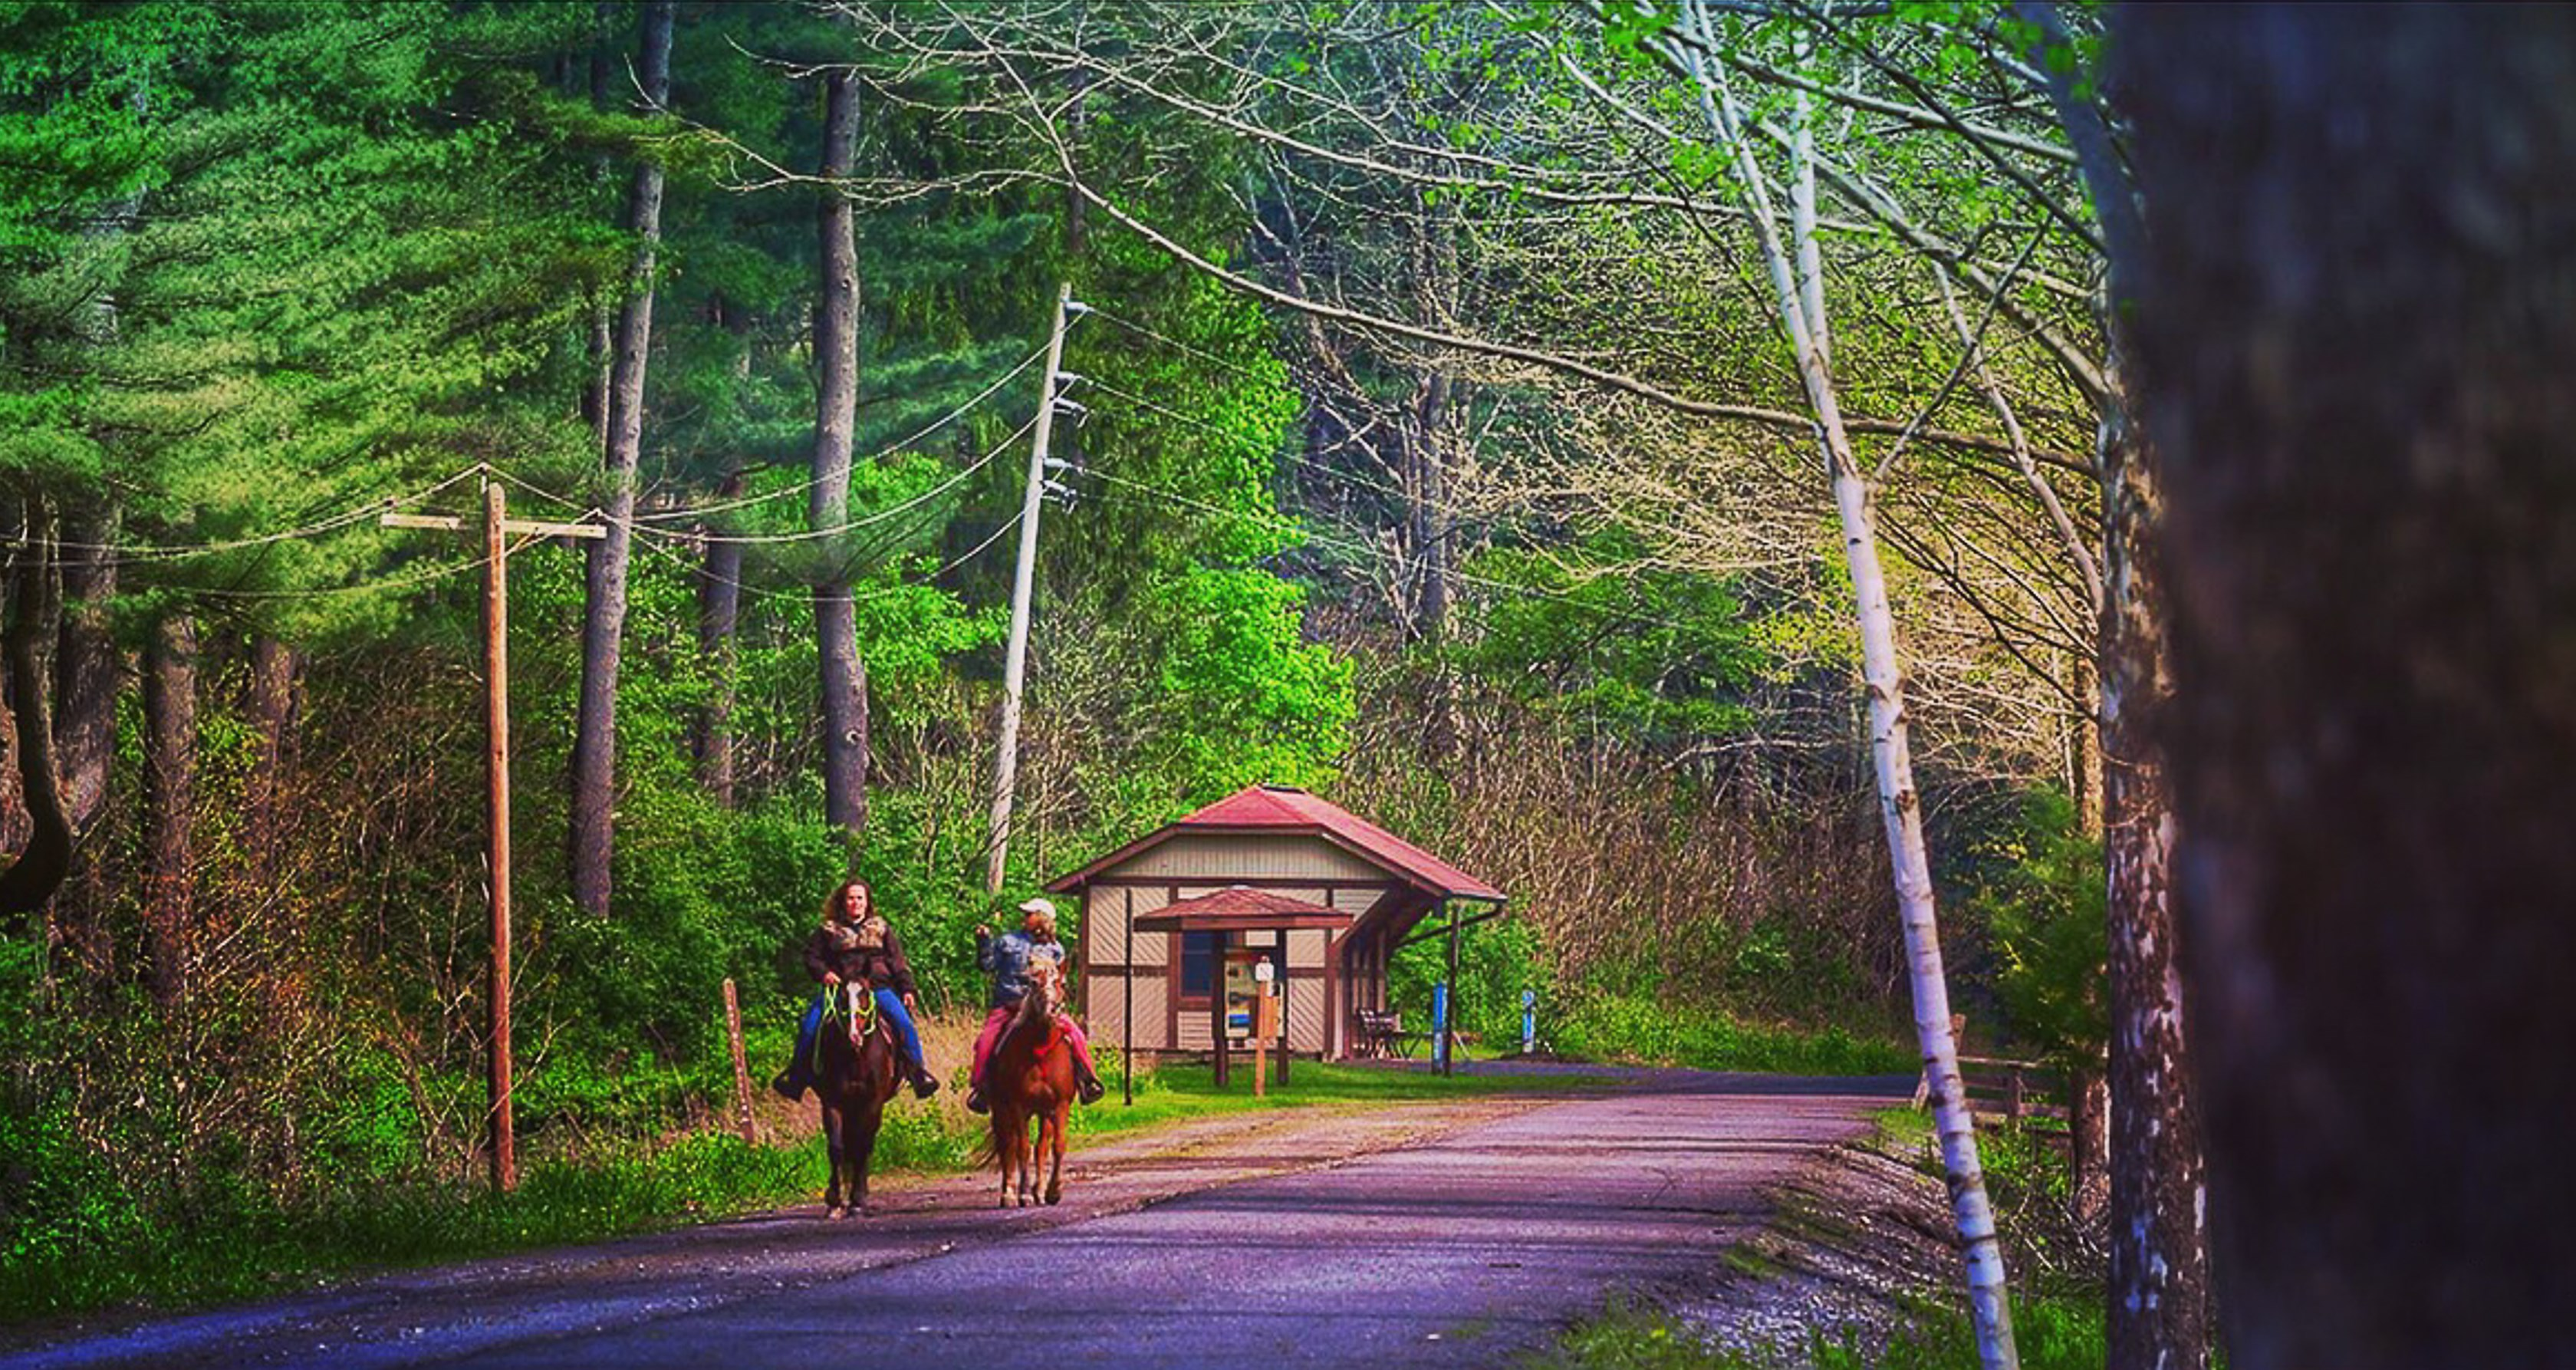 Pennsylvania's Pine Creek Rail Trail